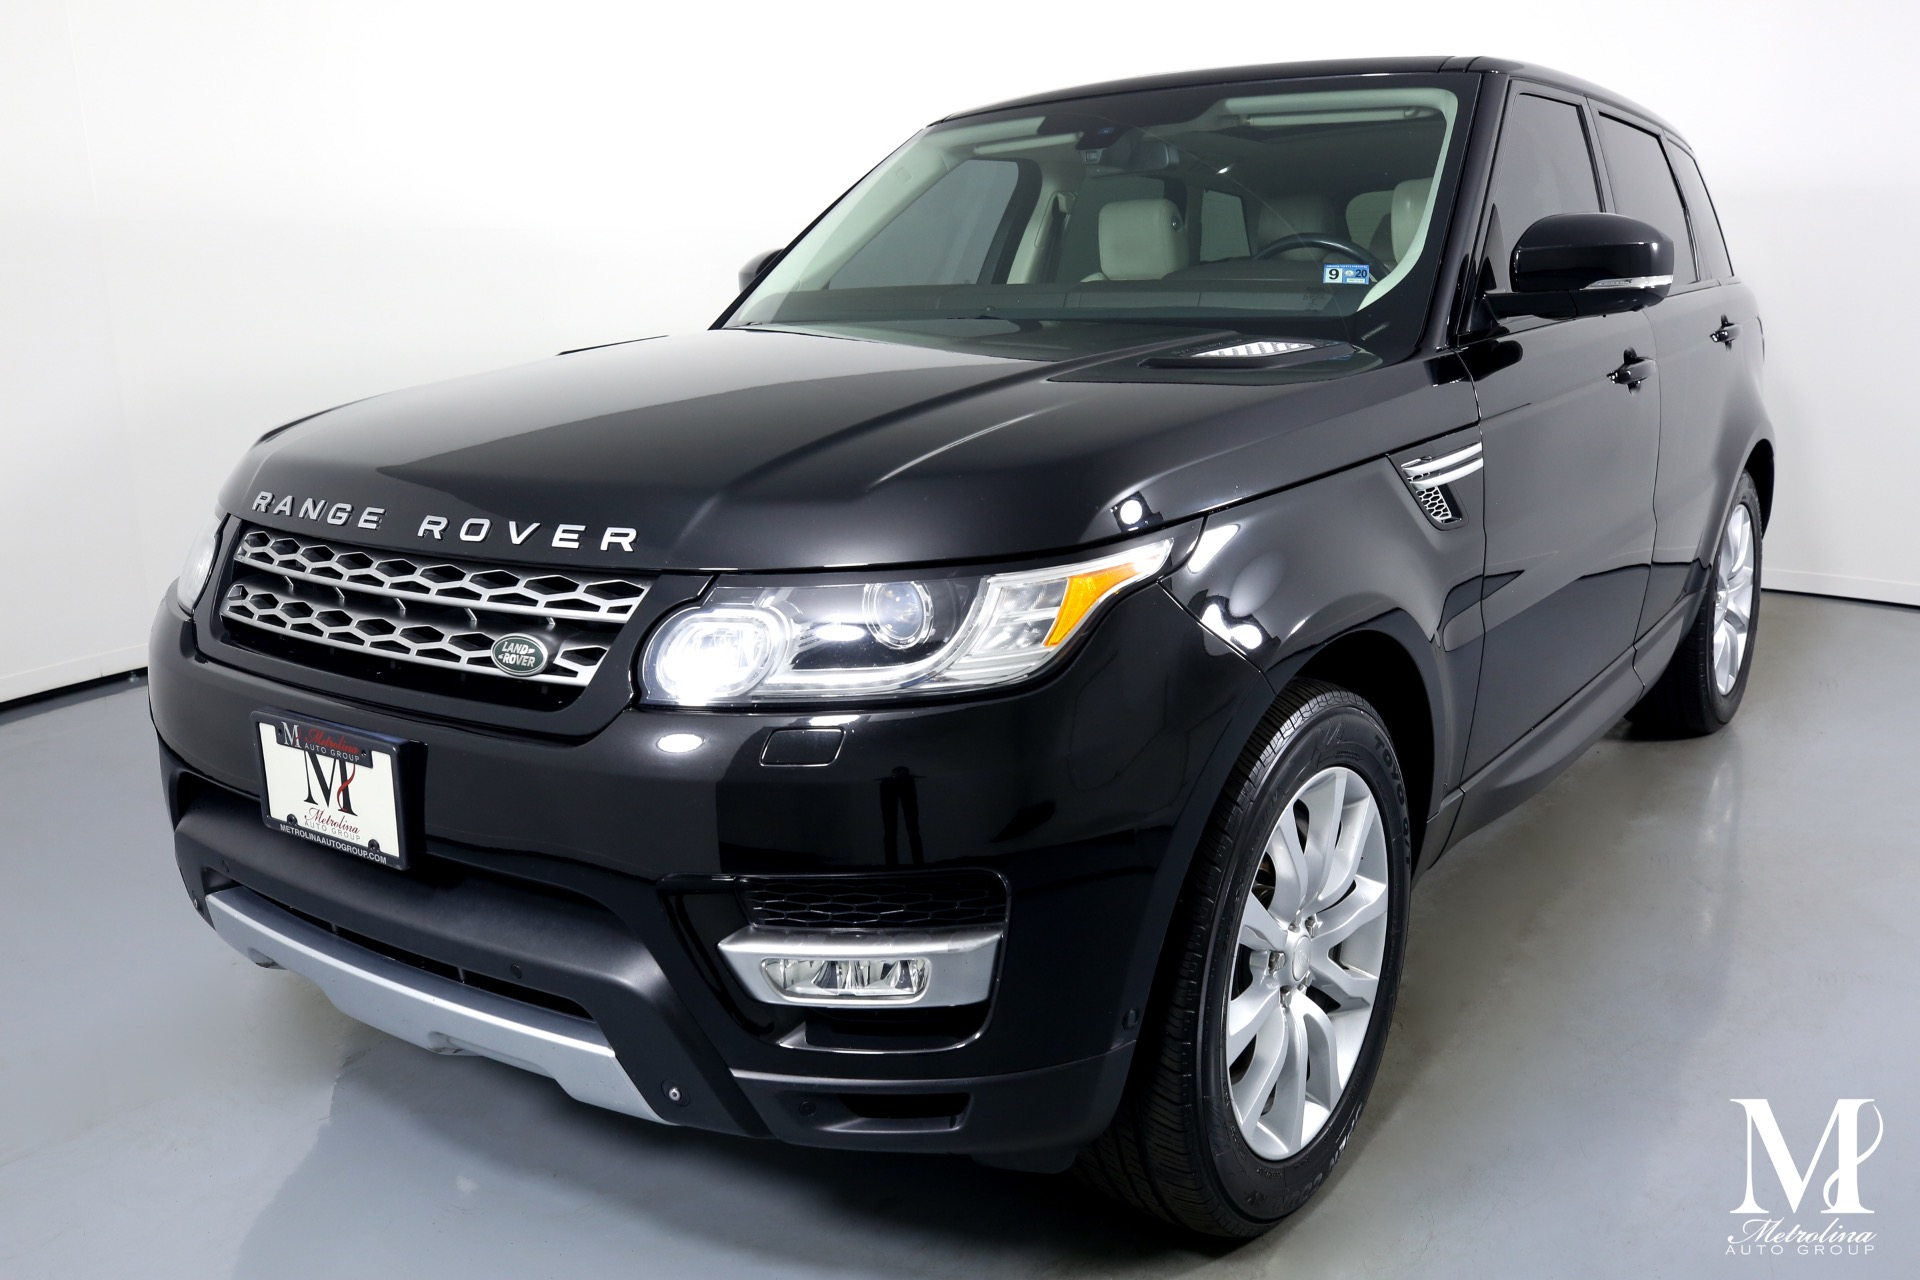 Used 2014 Land Rover Range Rover Sport Supercharged for sale $29,996 at Metrolina Auto Group in Charlotte NC 28217 - 4